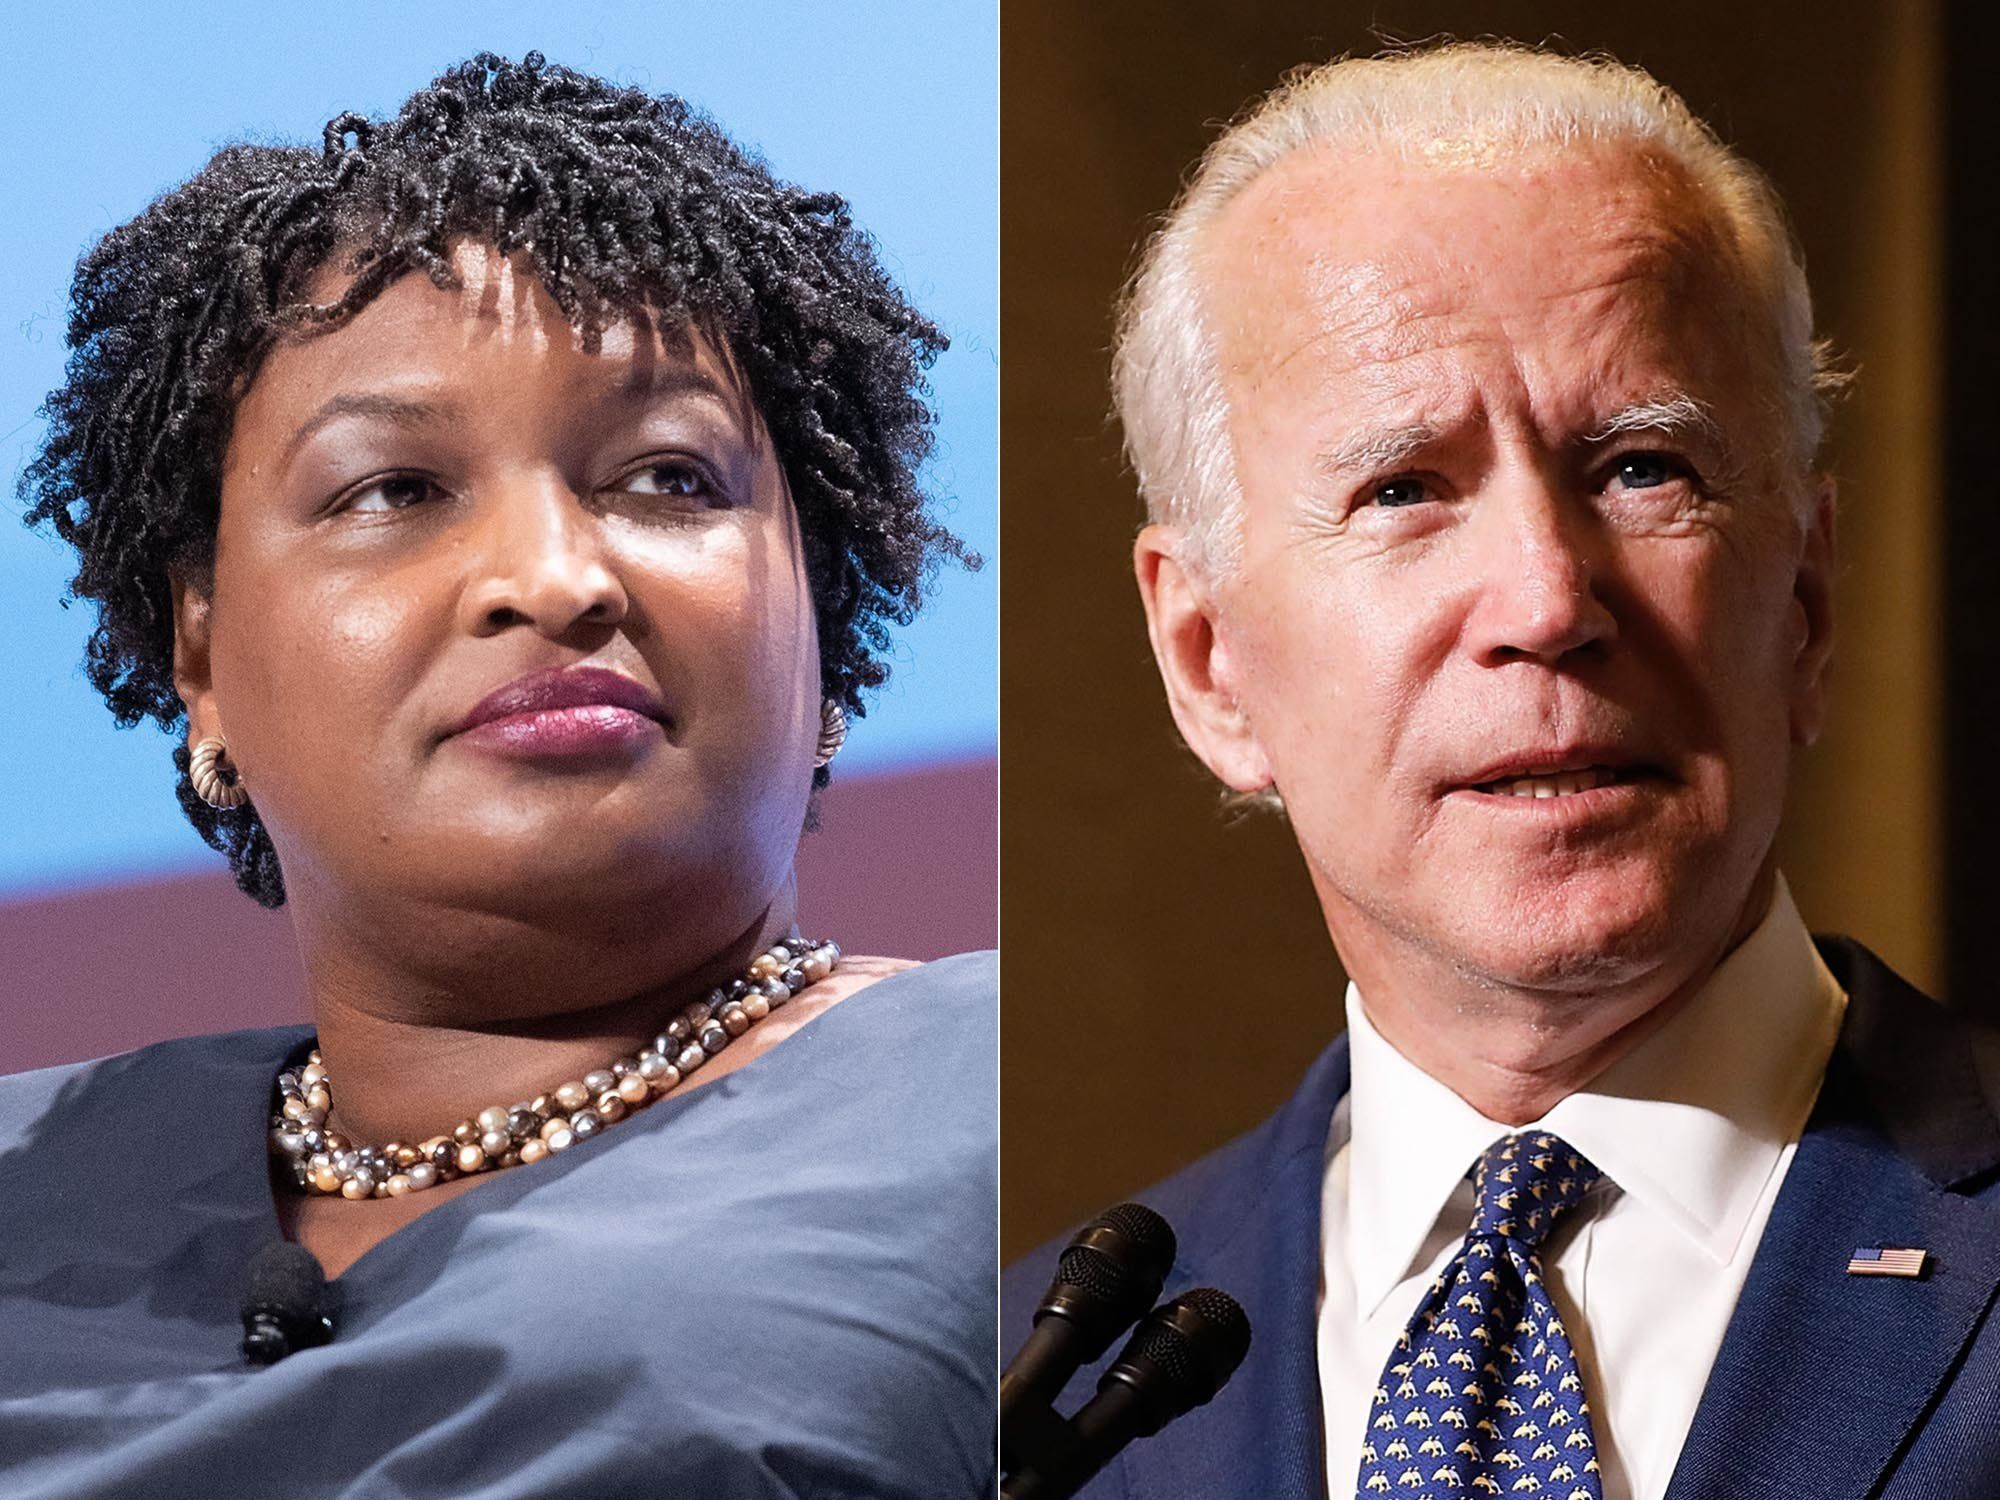 The Disrespect Of Floating Stacey Abrams As Joe Biden's Running